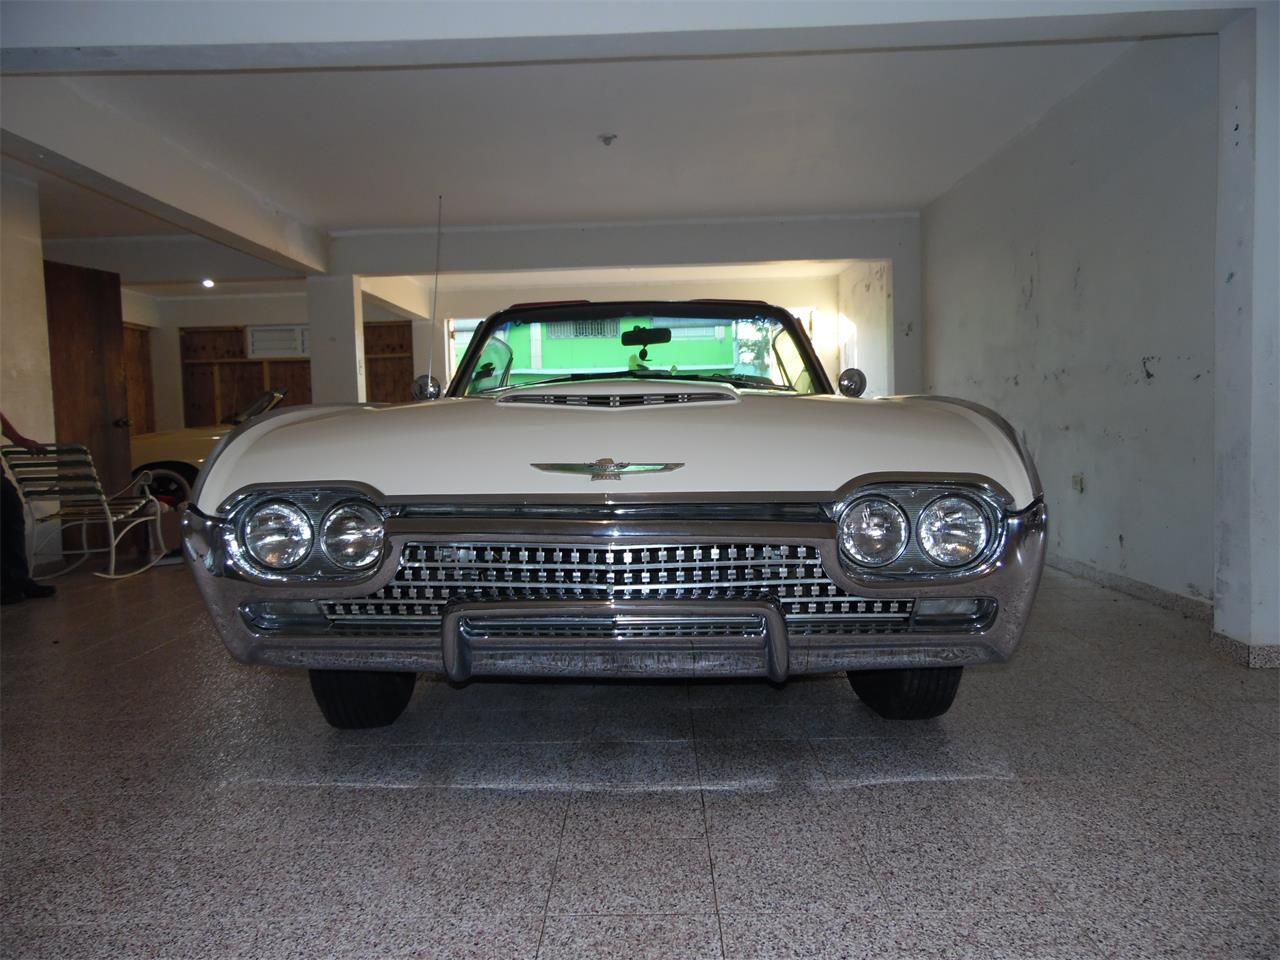 Large Picture of Classic 1962 Ford Thunderbird located in Moca Puerto Rico - $55,000.00 Offered by a Private Seller - MHQG